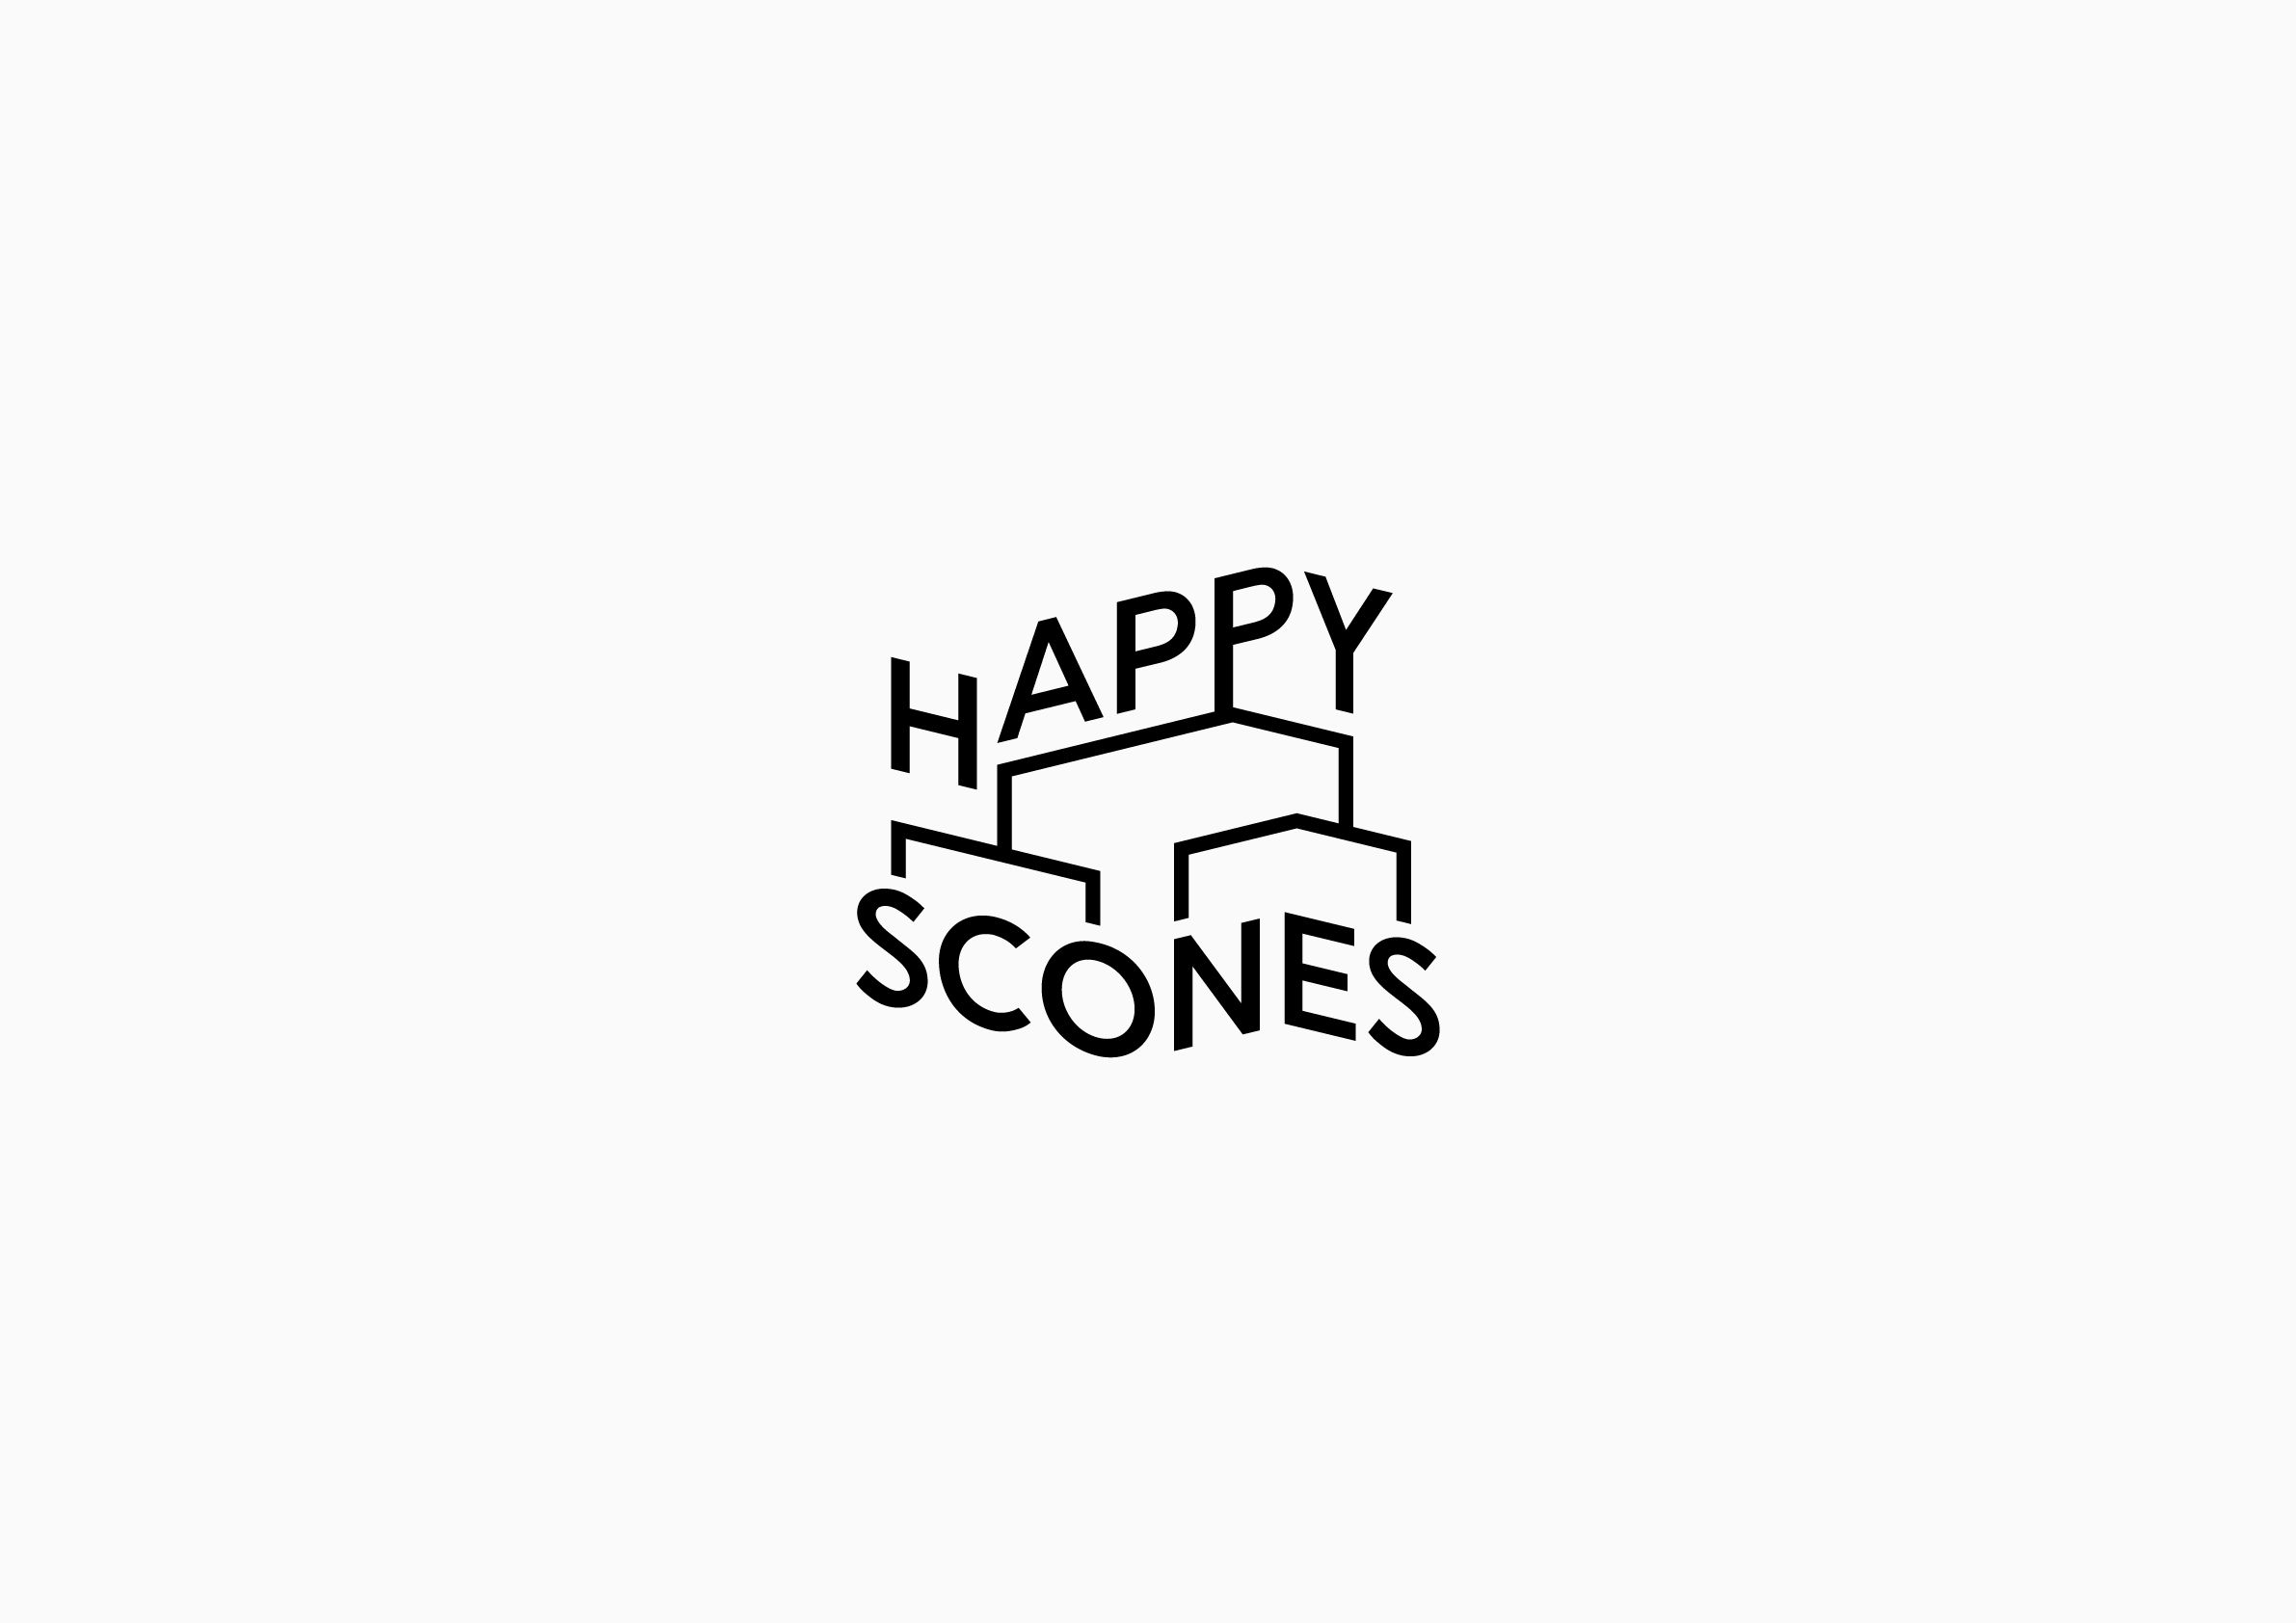 HAPPY SCONES